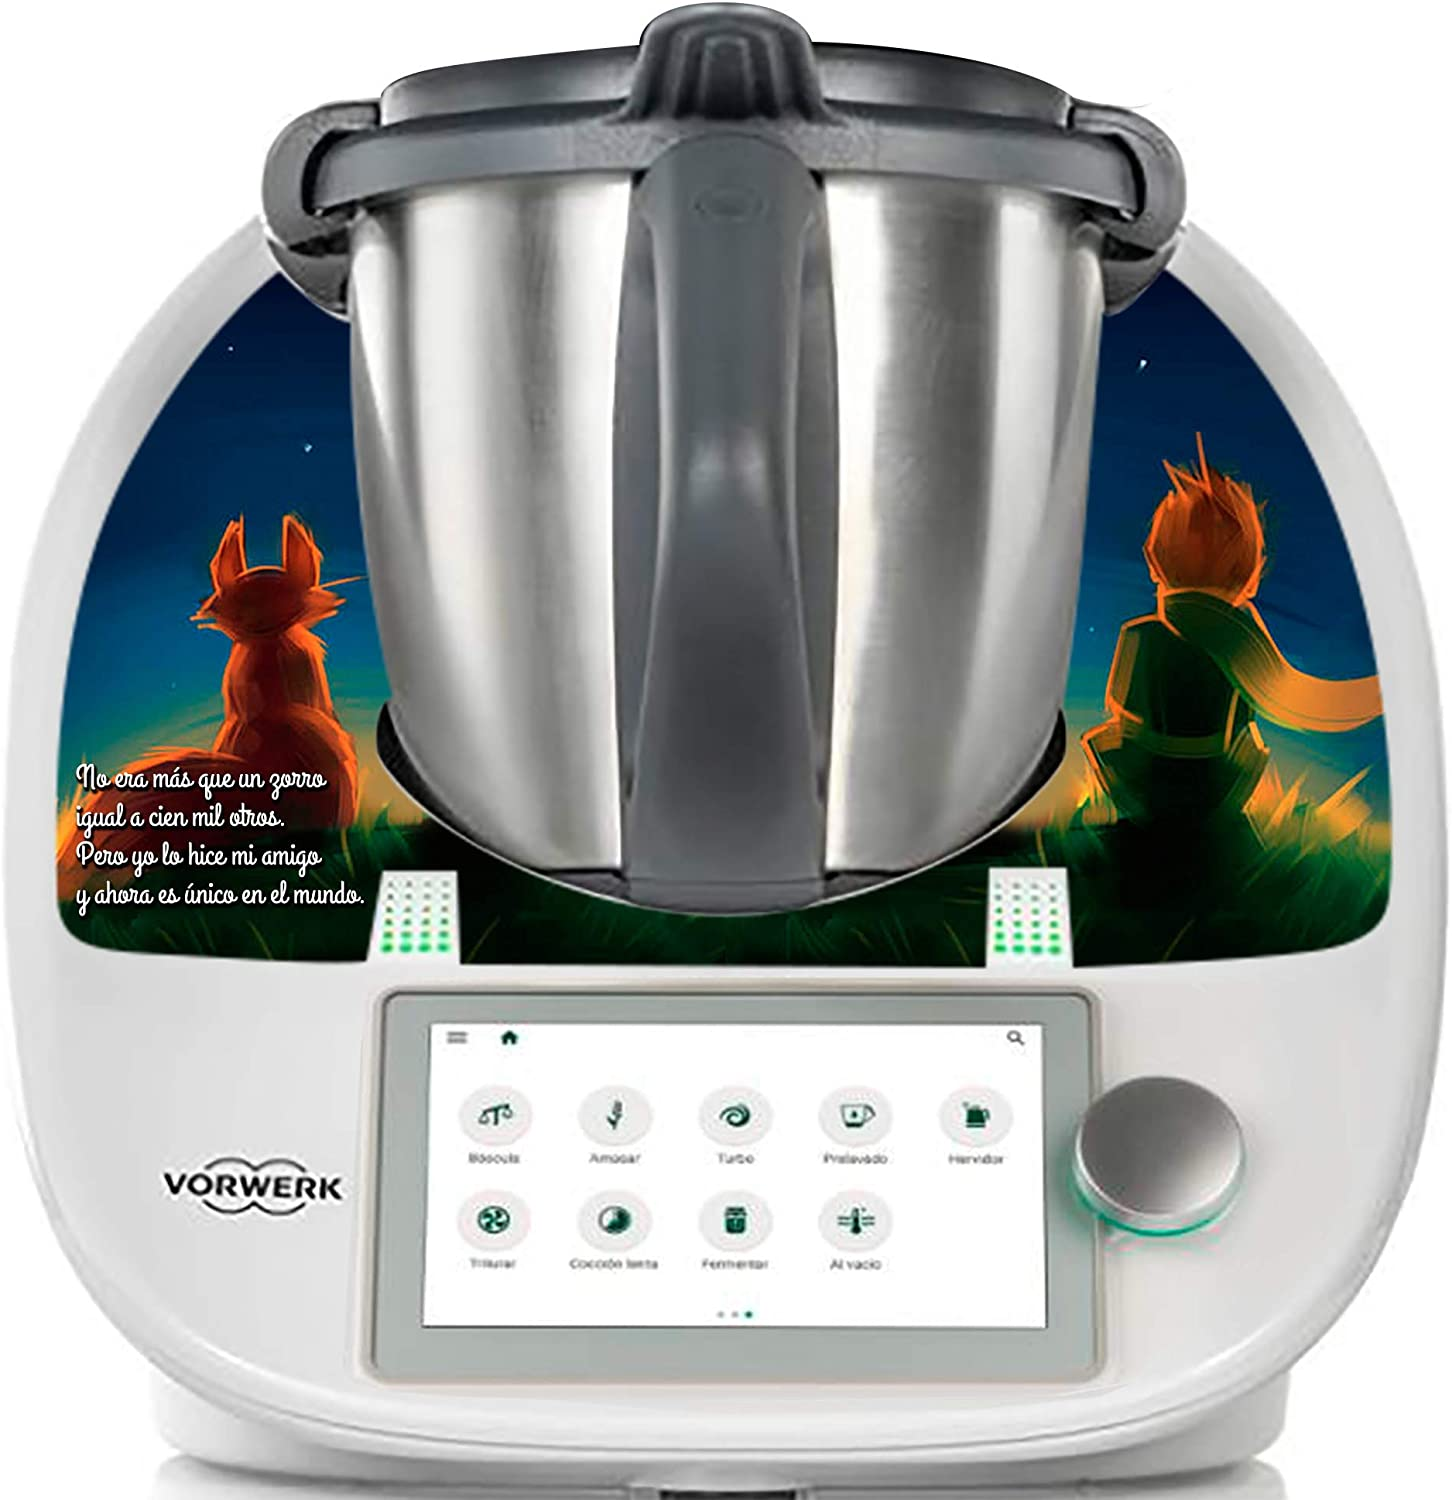 Thermodernizate Principito Vinilos Thermomix TM6: Amazon.es